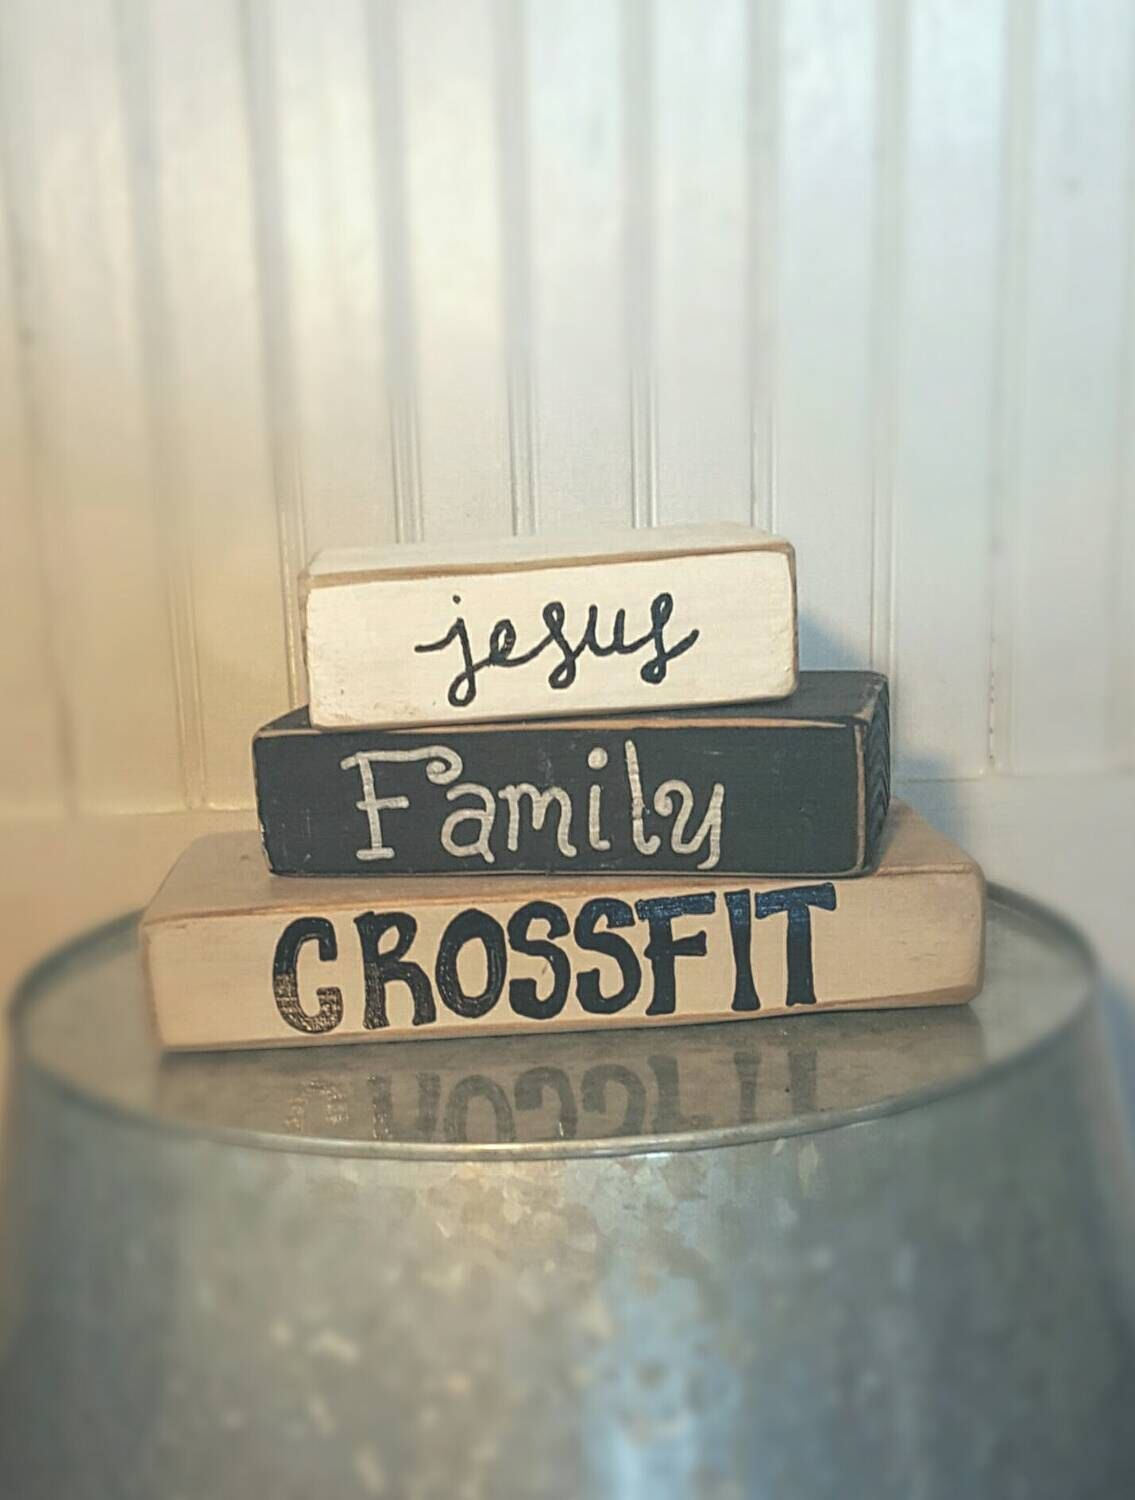 Pin by kimberly evans on workout gift ideas crossfit